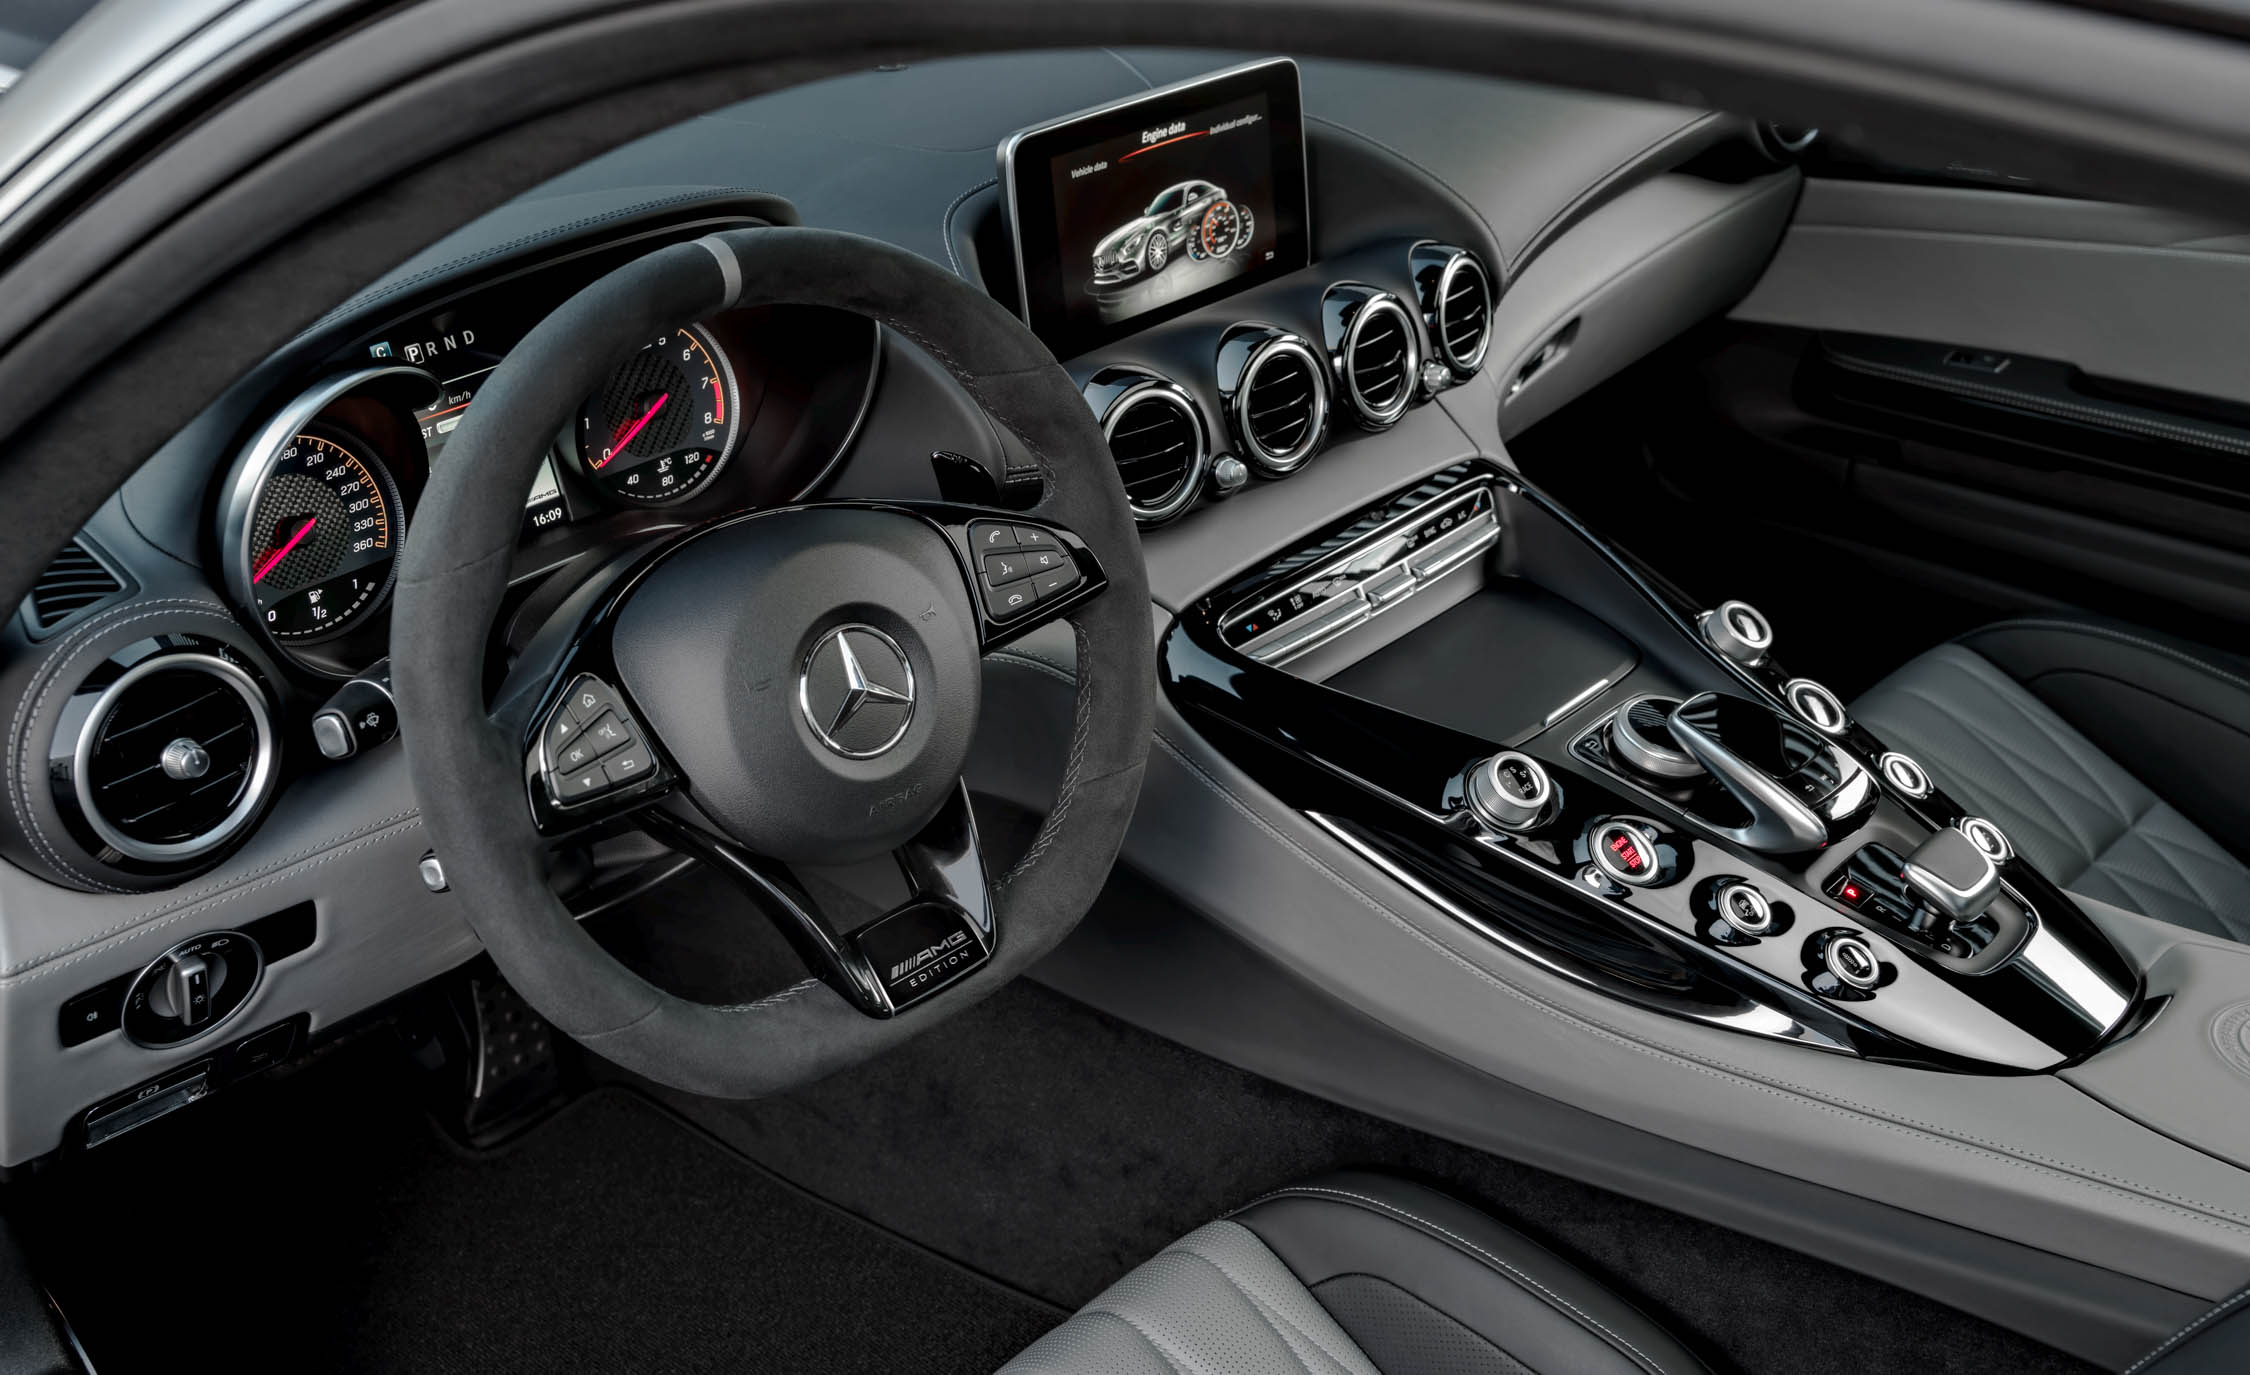 2018 Mercedes Amg Gt C Interior Cockpit Steering And Dash (View 12 of 23)